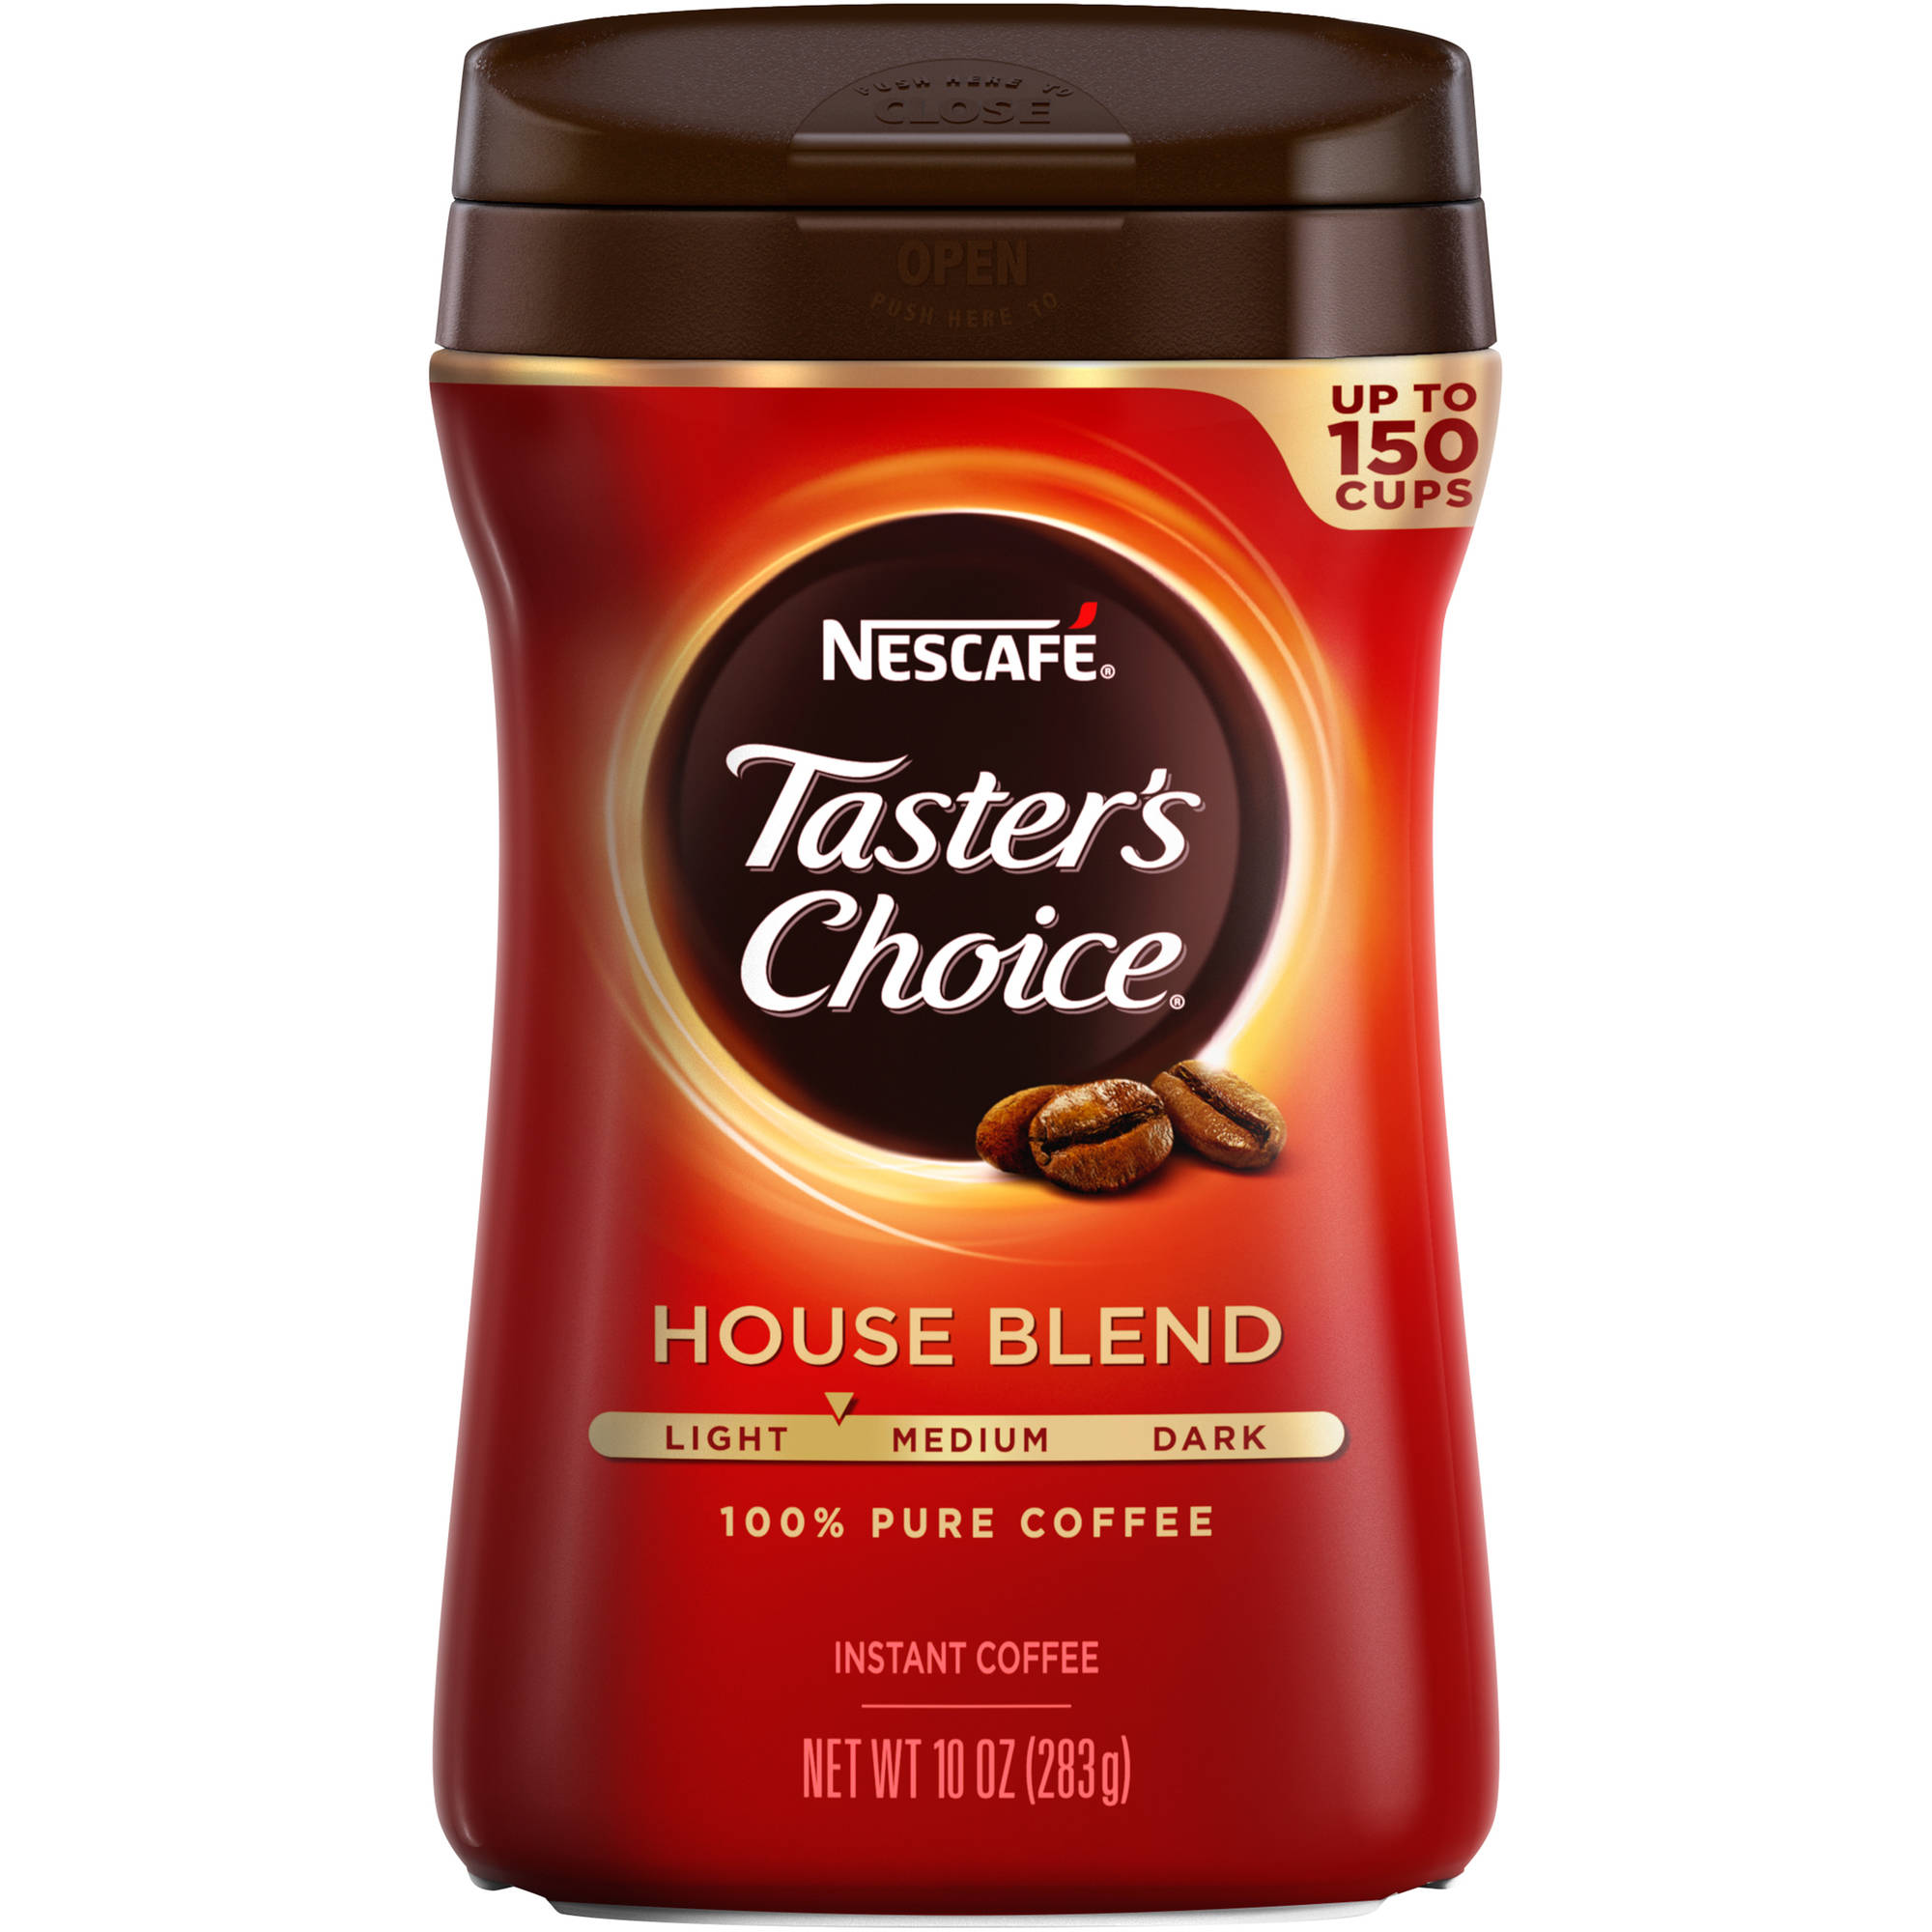 Nescafe Taster39s Choice House Blend Instant Coffee 10 oz